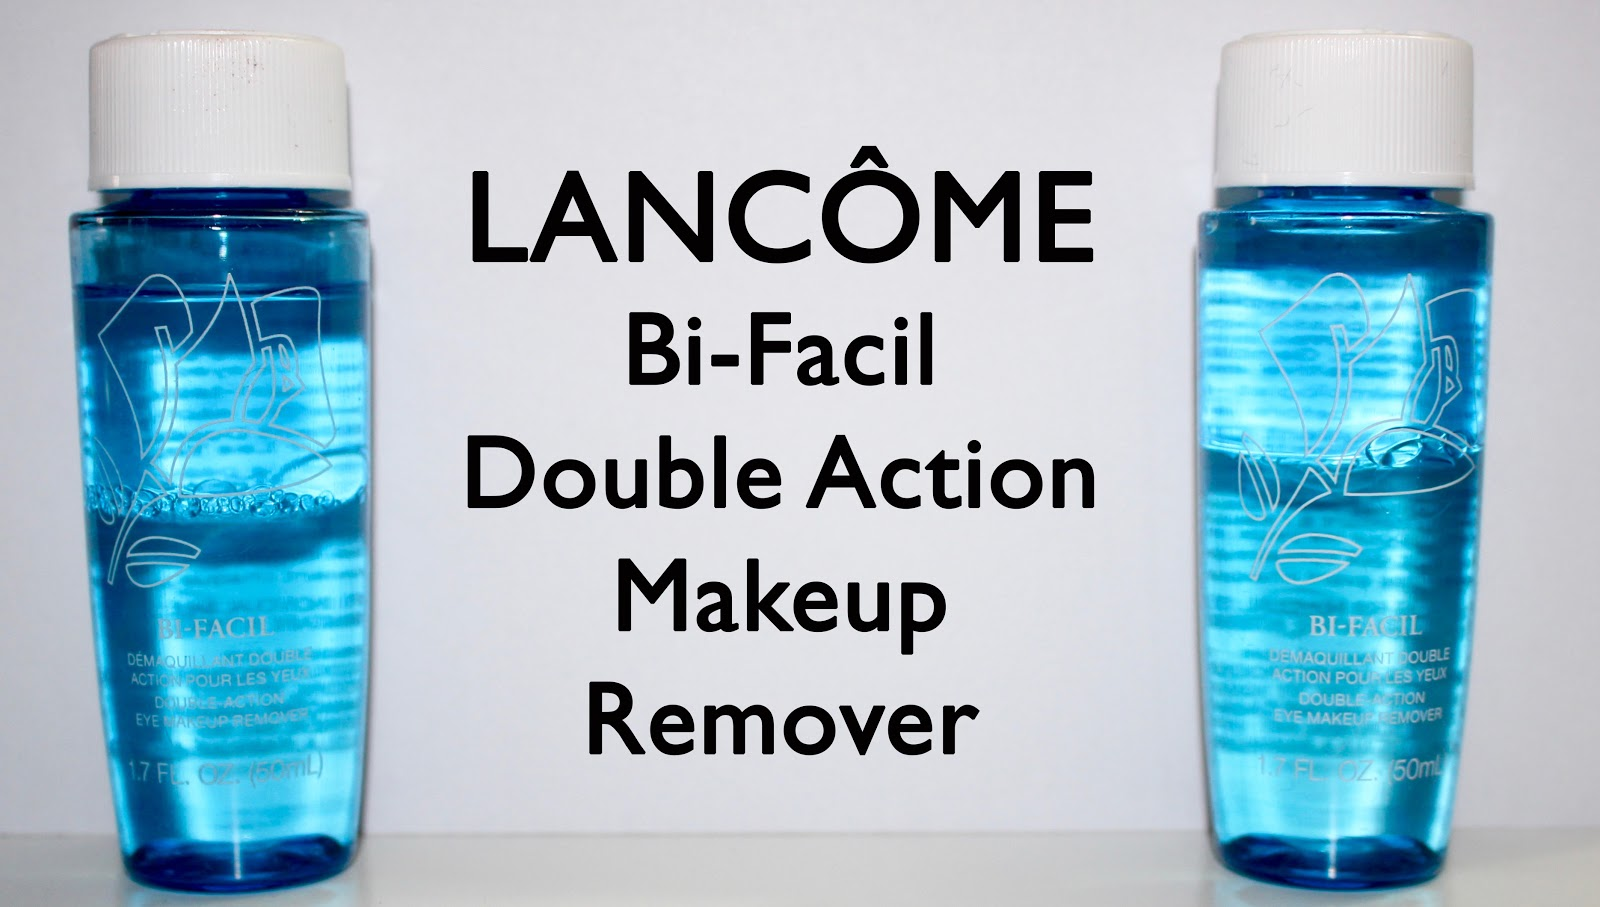 Lancome Bi Facil Double Action Eye Makeup Remover Review